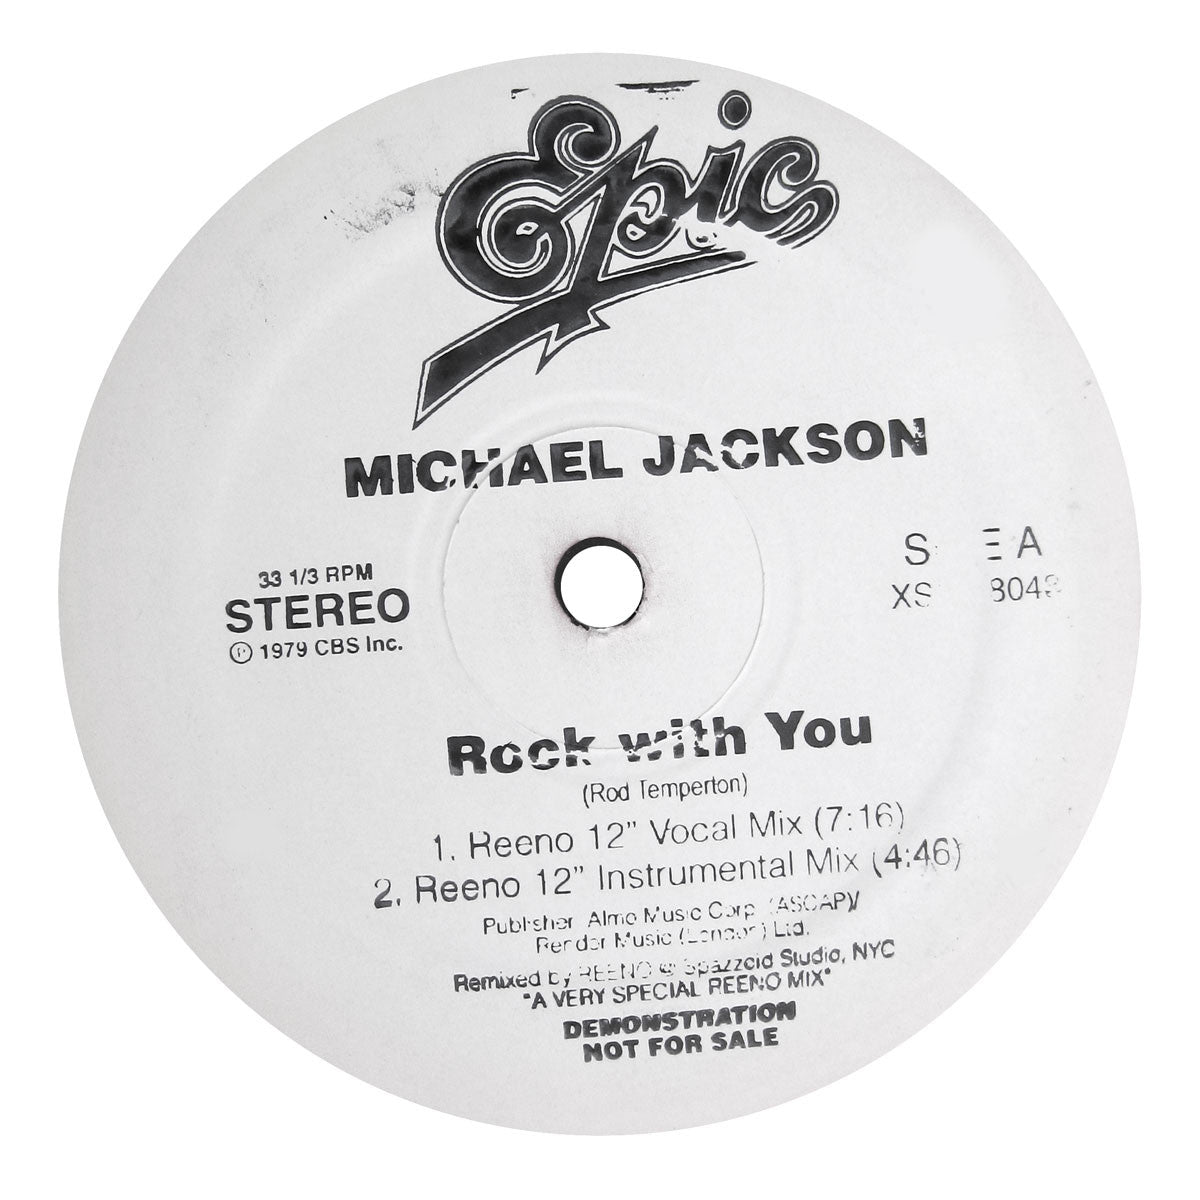 Michael Jackson: Rock With You / P.Y.T. Reeno Remix Vinyl 12""